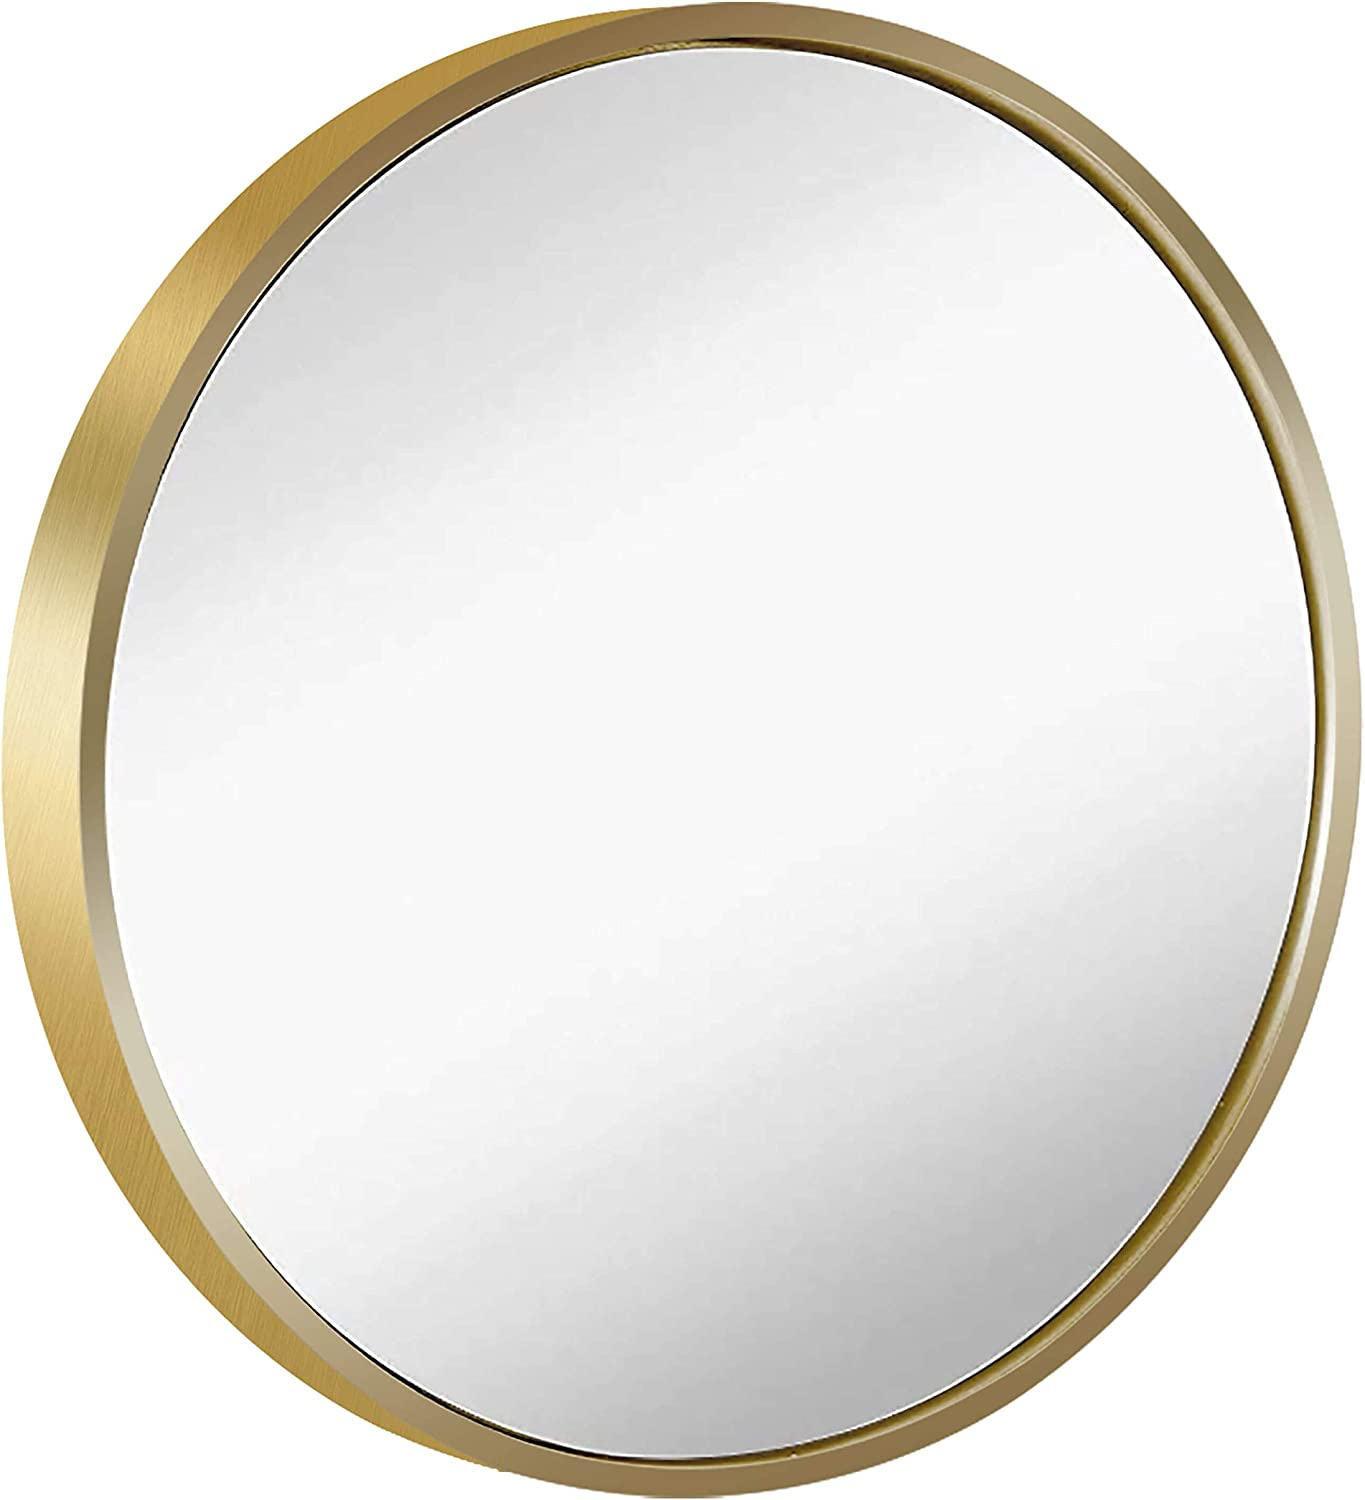 Round Framed Wall Hanging Mirror: Vanity Mirror Large Circle Metal Mirror for Decorative Wall Art (Golden, 24 inch,Multi-Sized)